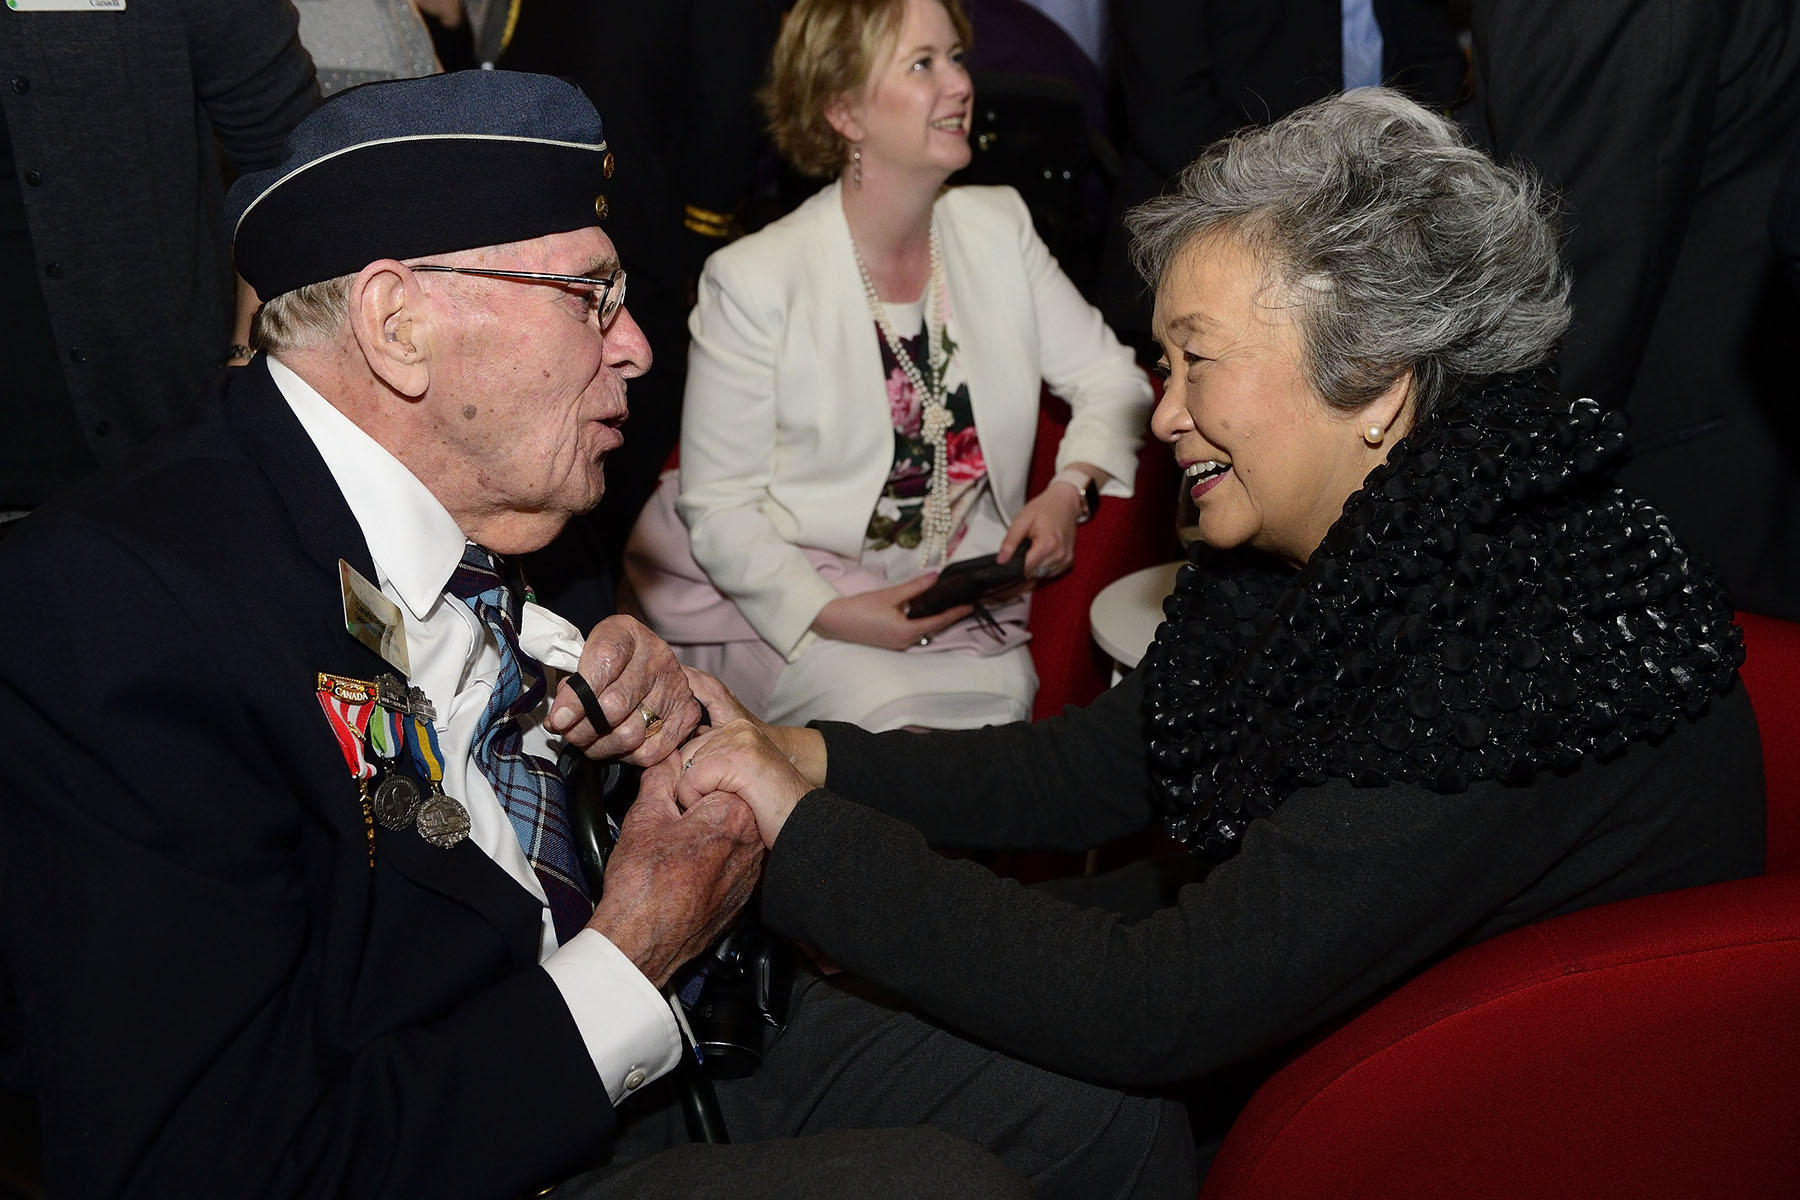 The Right Honourable Adrienne Clarkson, 26th Governor General of Canada, was also in attendance and spoke with veterans.